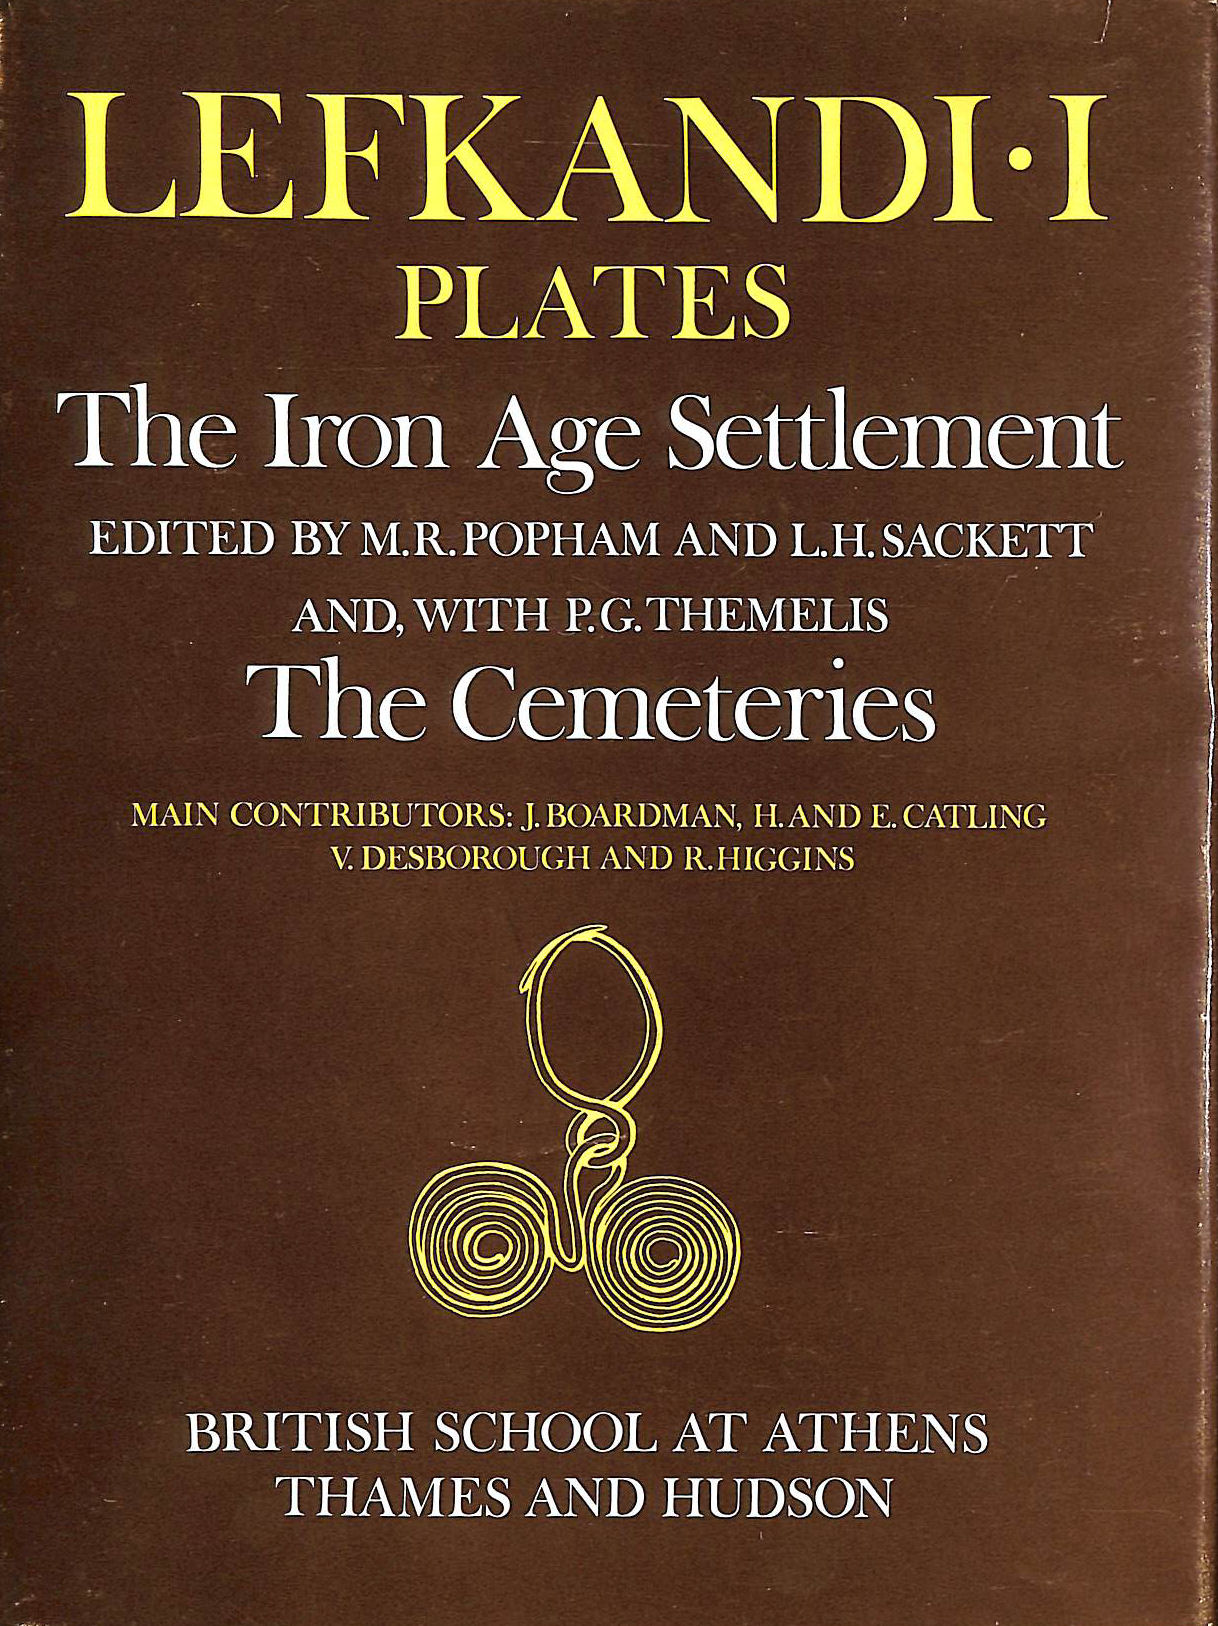 Image for Lefkandi I Plates. The Iron Age Settlement. The Cemeteries.